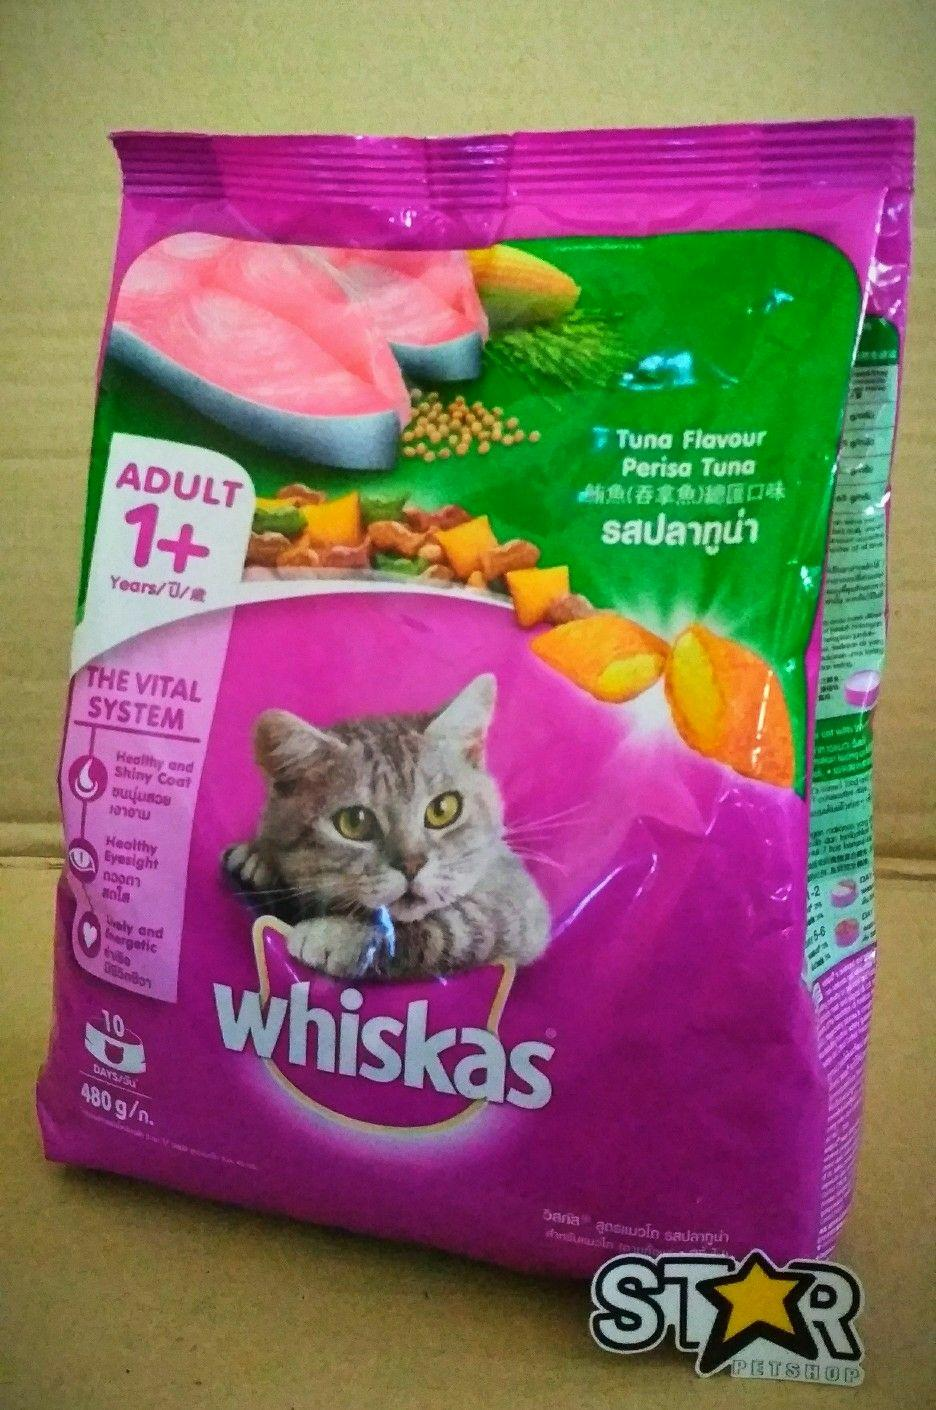 Buy Sell Cheapest Whiskas Tuna 480 Best Quality Product Deals Dry 480gr Makanan Kucing Kering Rasa Adult Fresh Pack